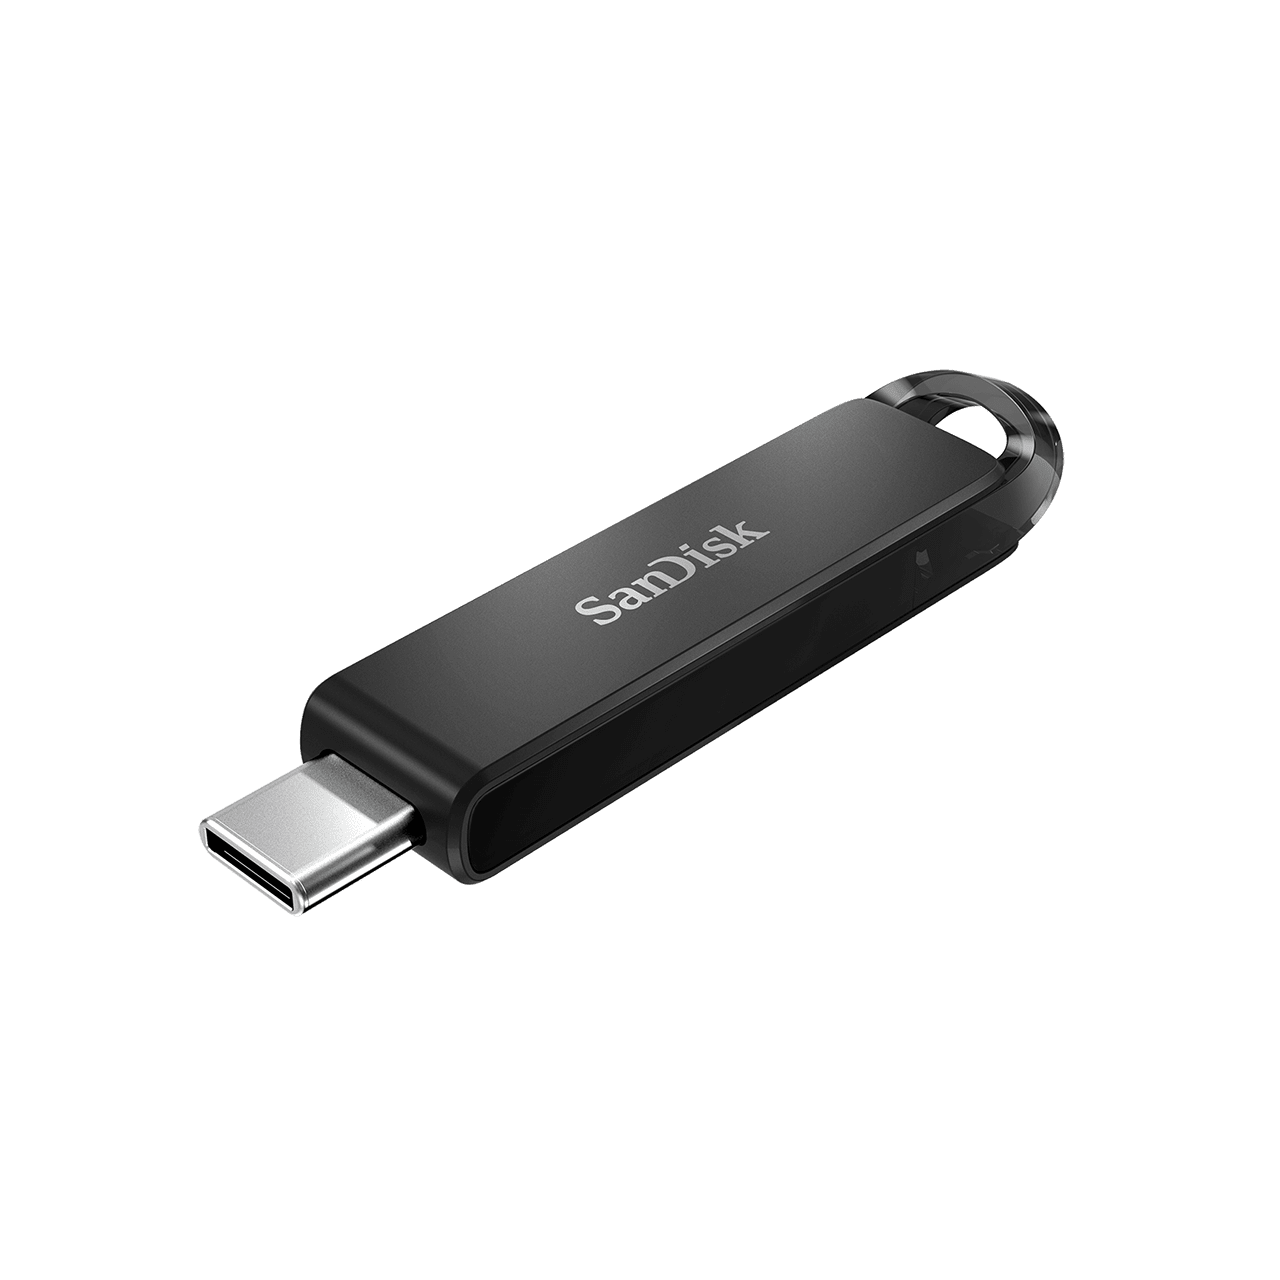 SanDisk Ultra USB-C Flash Drive 32GB